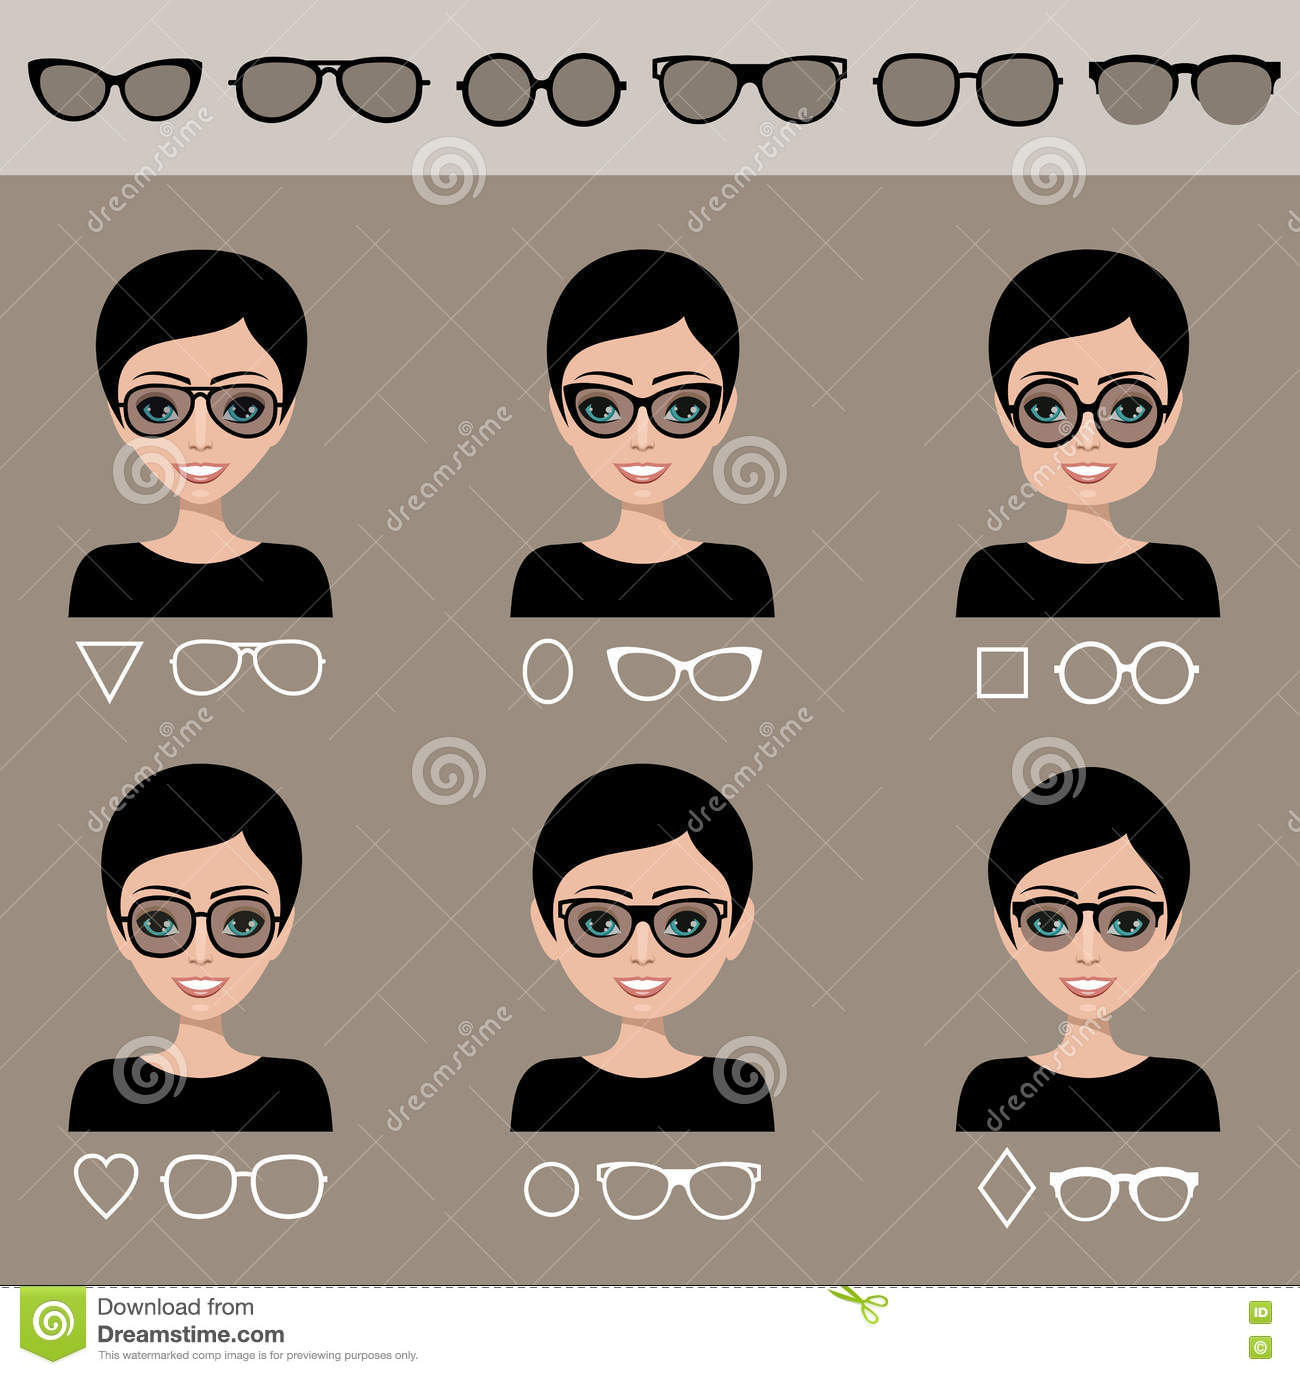 Sunglasses Shapes 7. Cartoon Vector